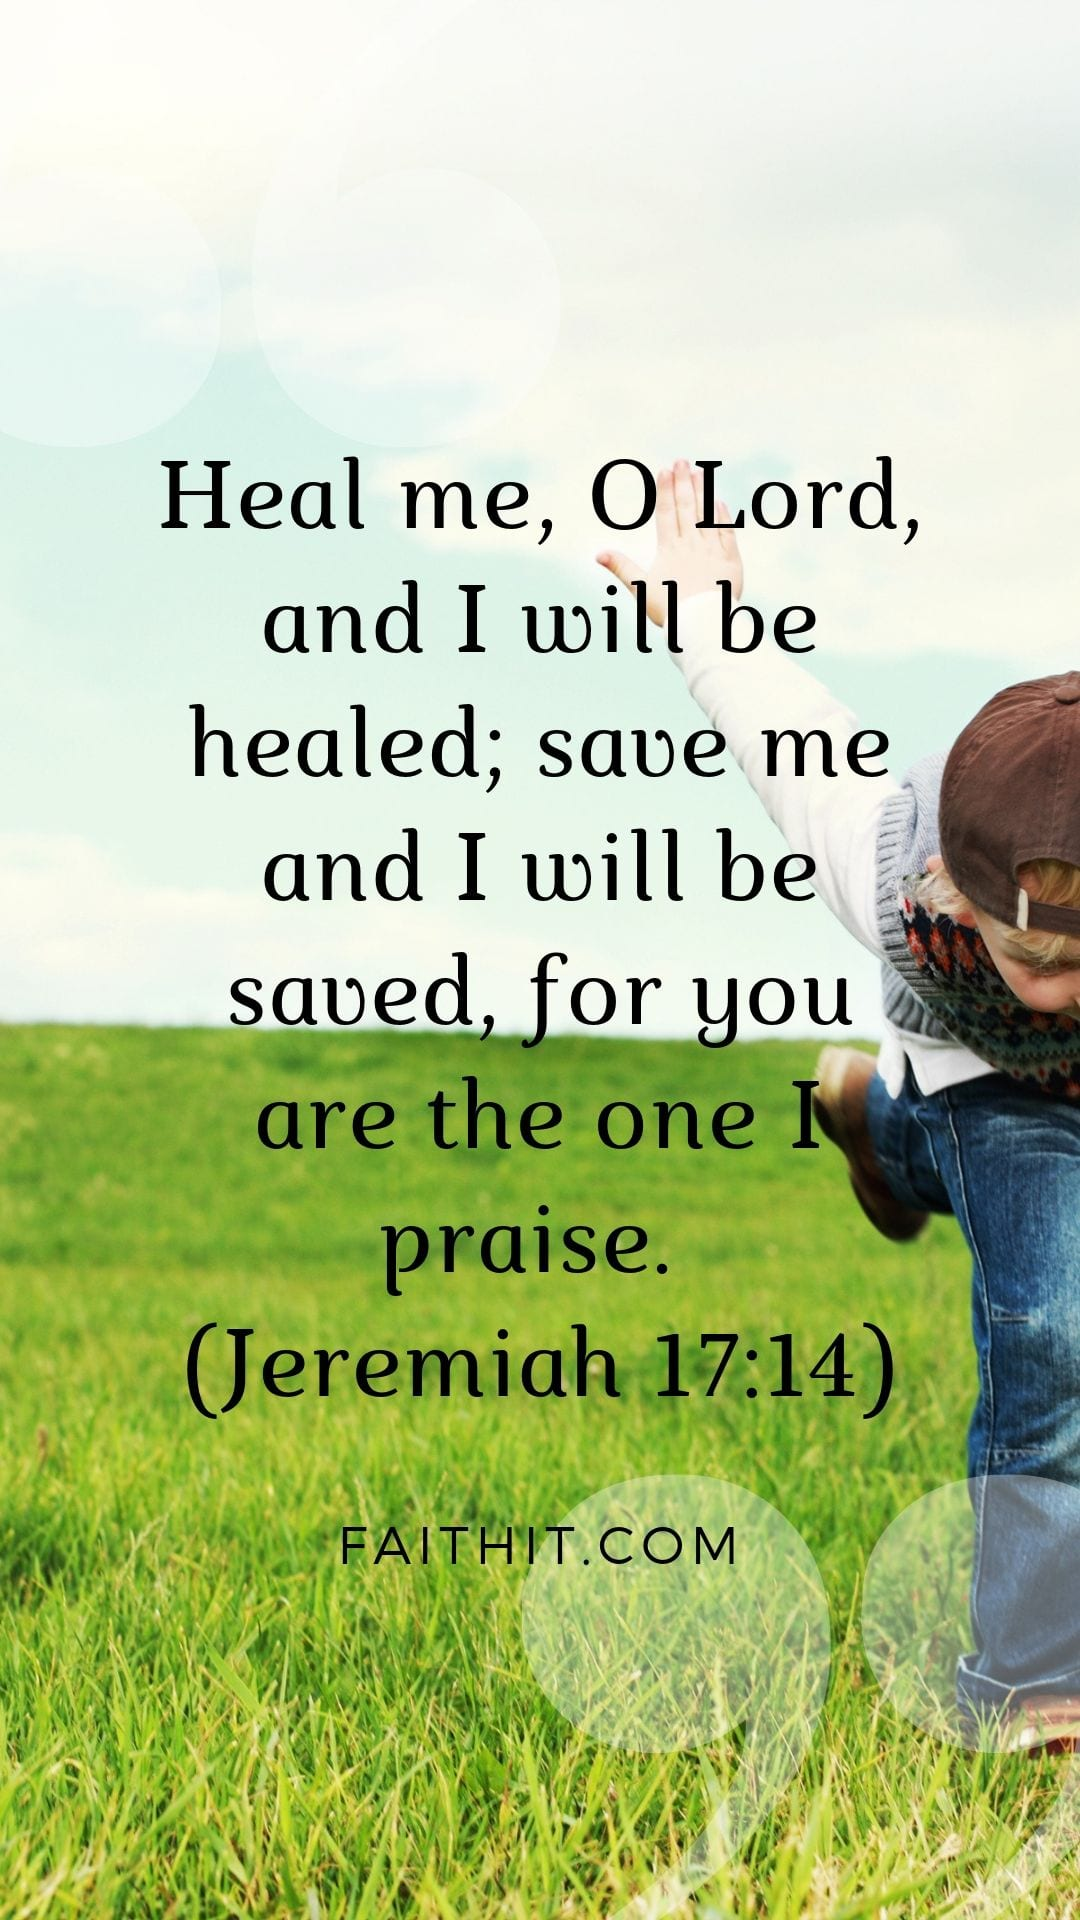 Heal me, O Lord, and I will be healed; save me and I will be saved, for you are the one I praise. (Jeremiah 17:14)